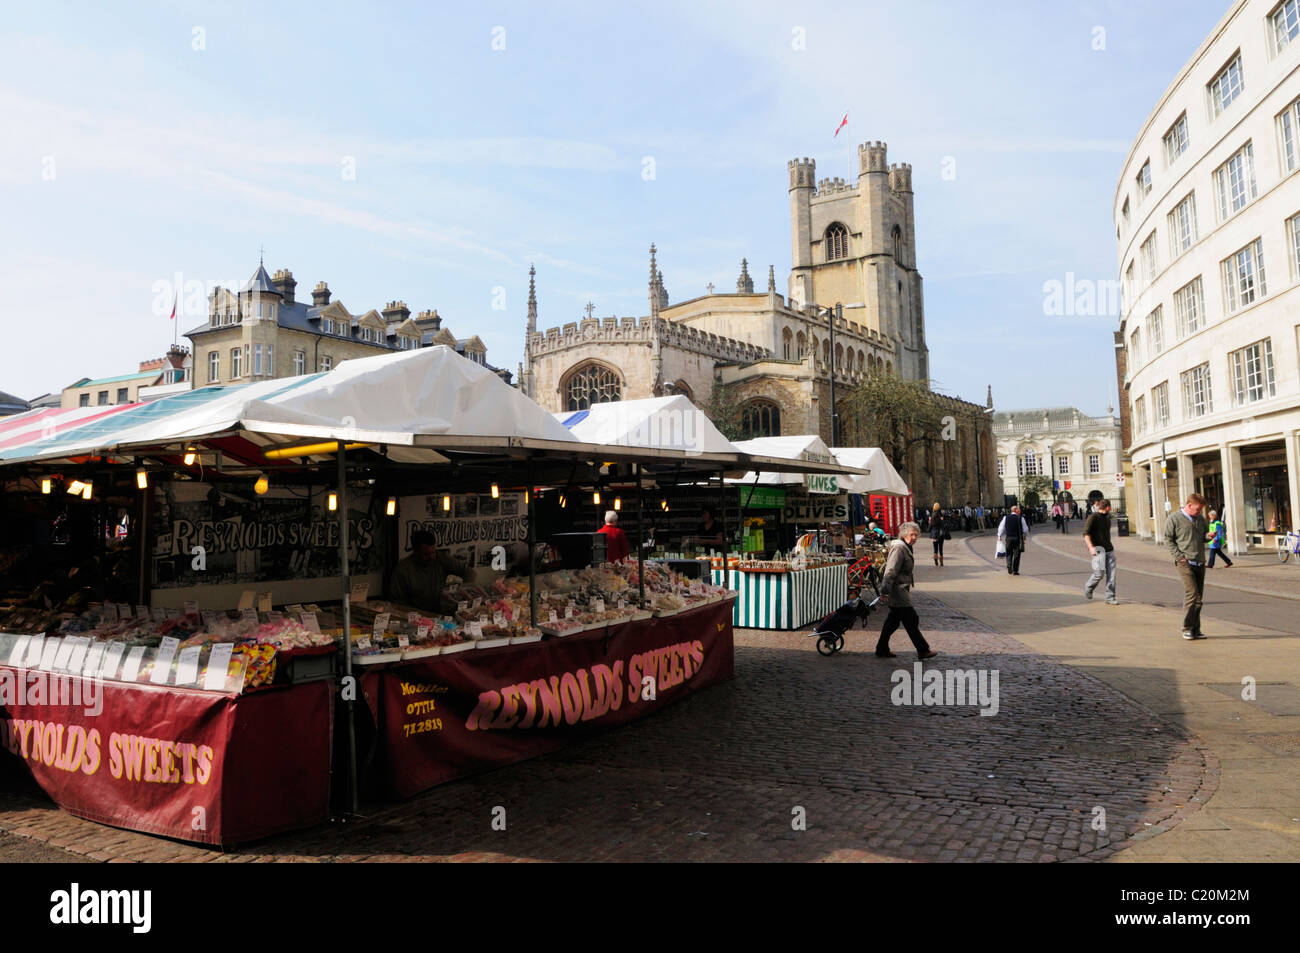 Reynolds Sweets Stall on The Market, with Great St Marys Church, Cambridge, England, UK - Stock Image